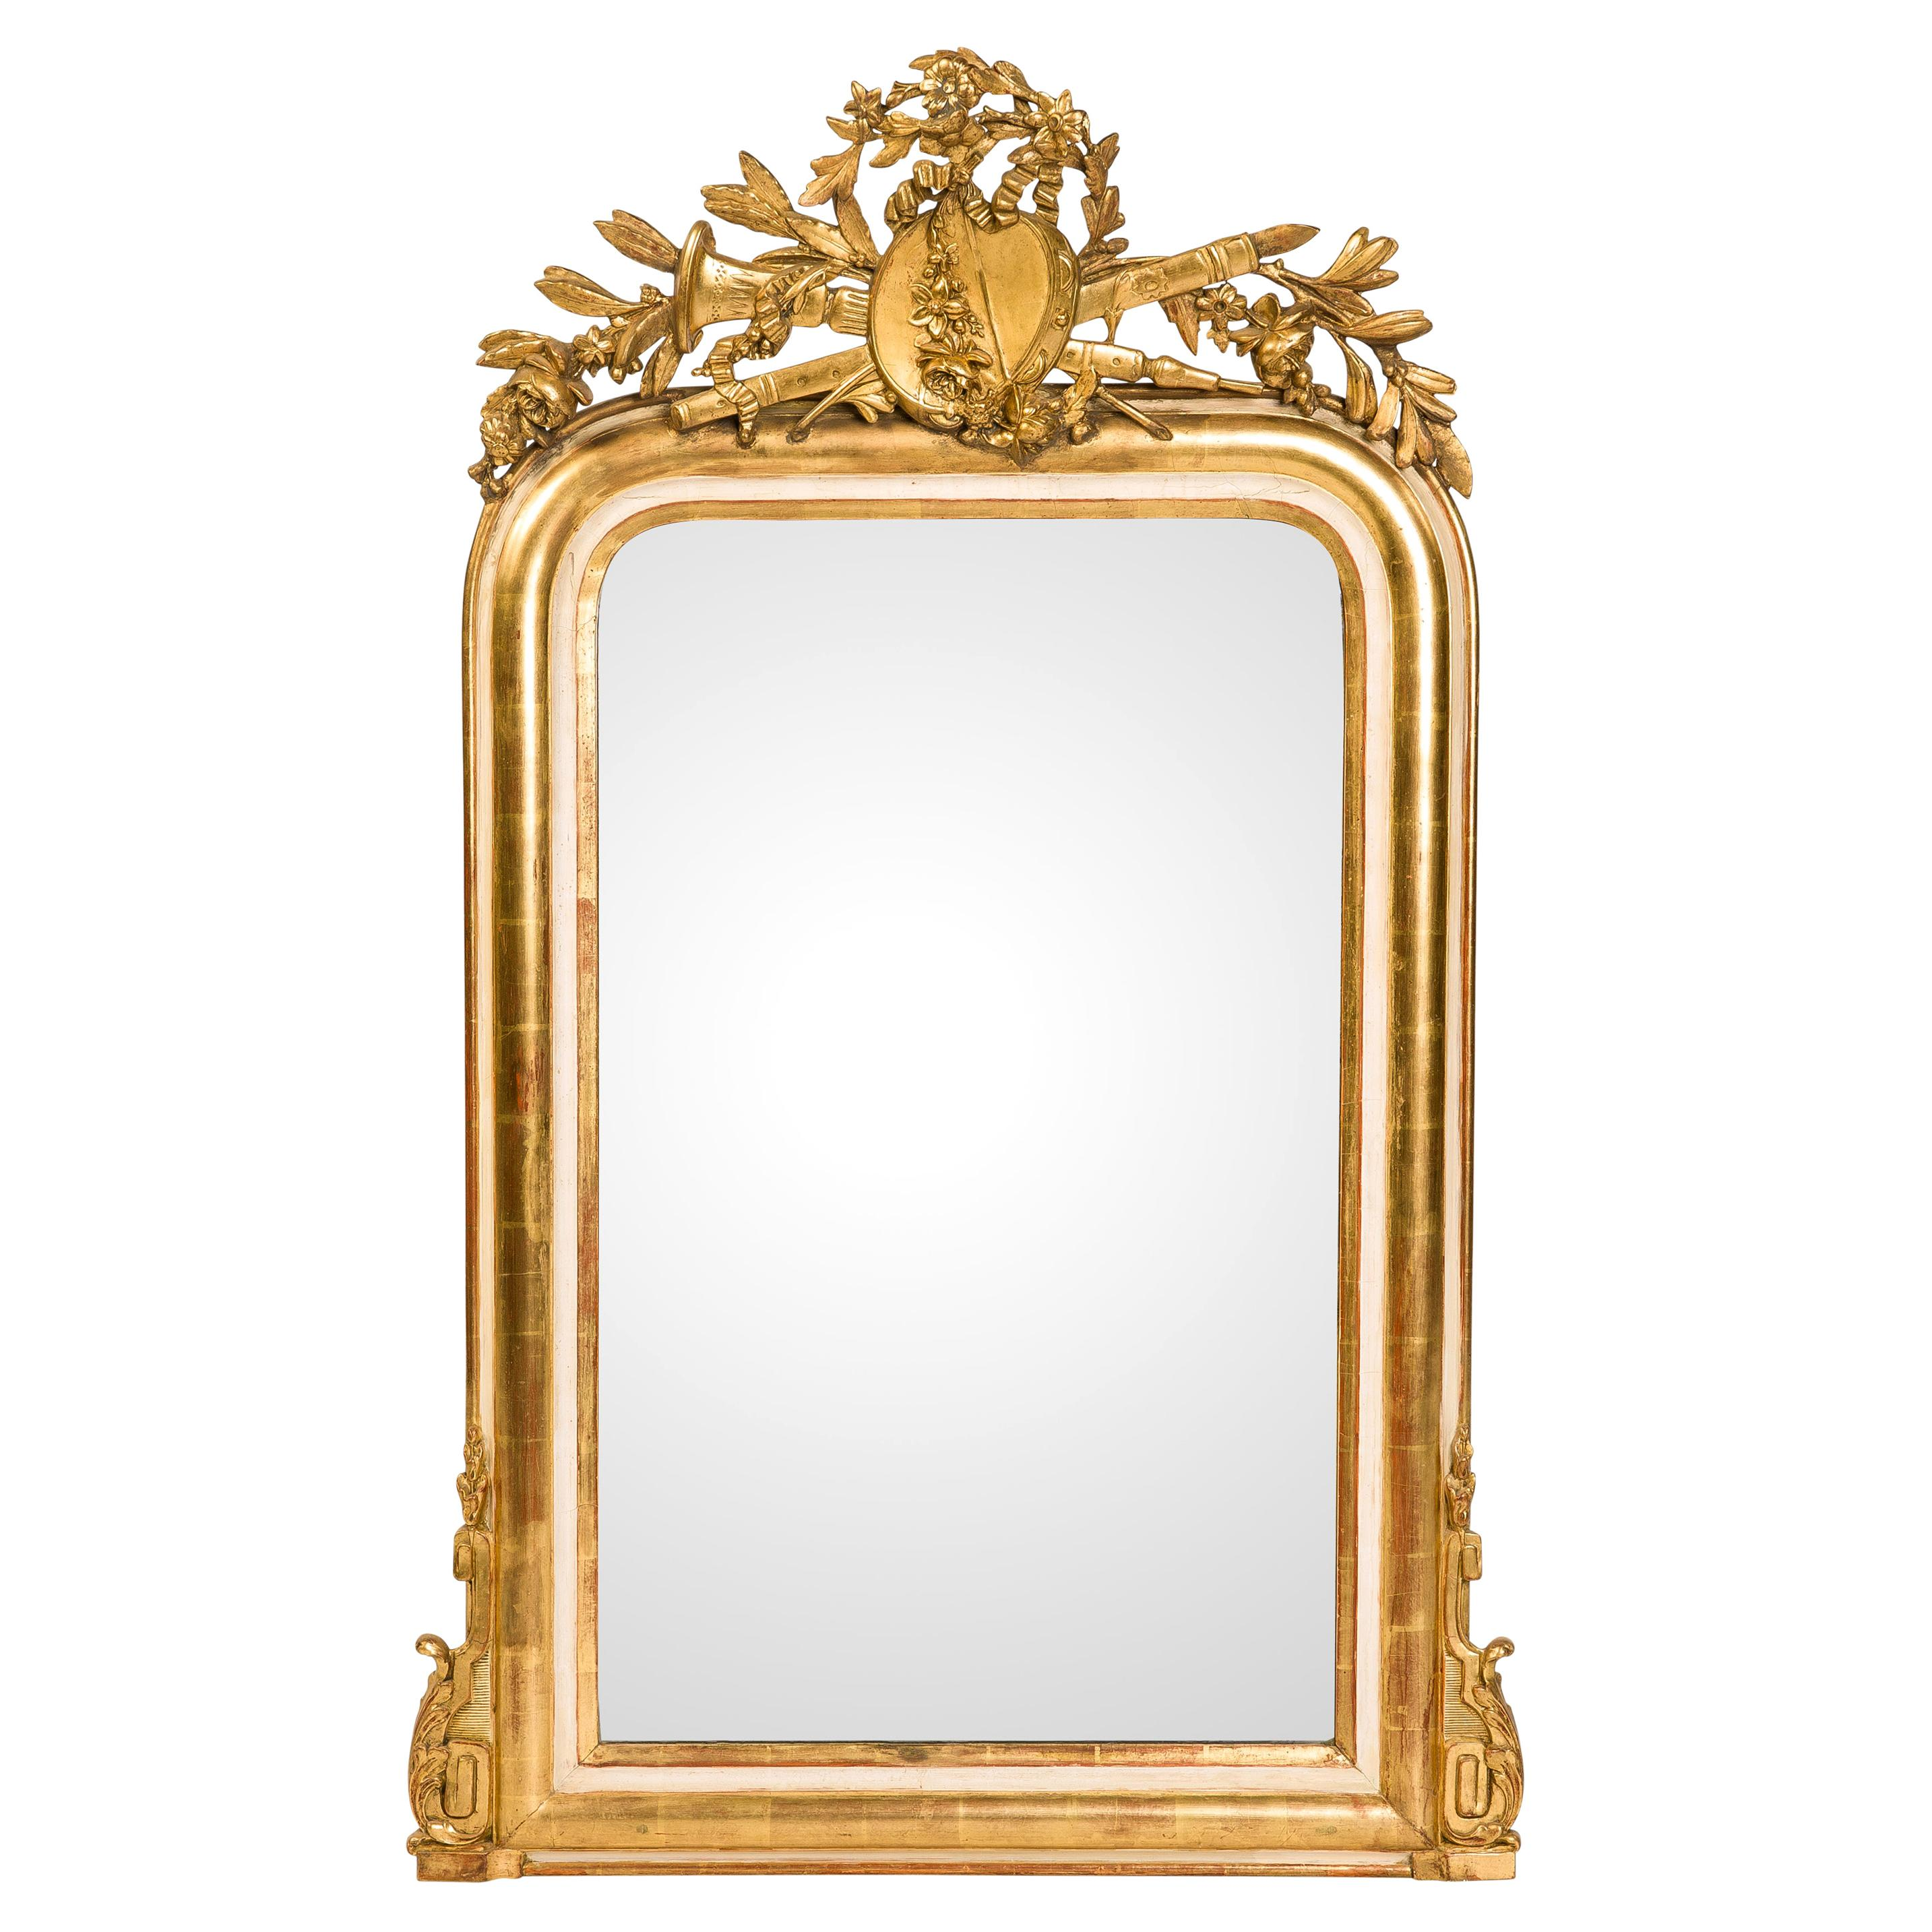 19th-Century French Louis Philippe Gold Leaf Gilt Mirror with Crest